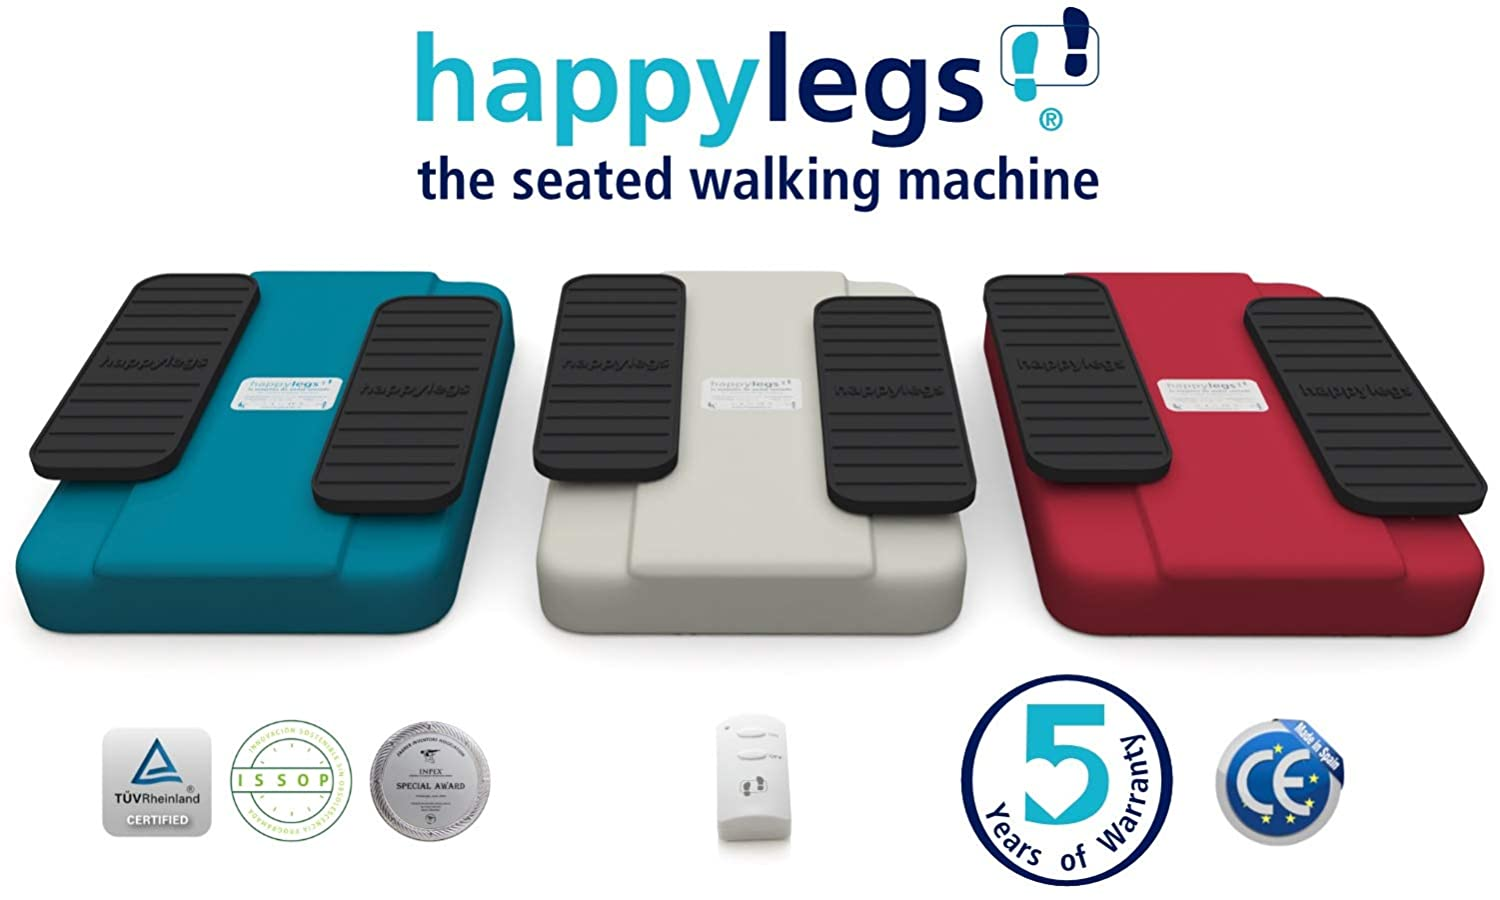 Happylegs - Transformador con interruptor: Amazon.es: Salud y ...